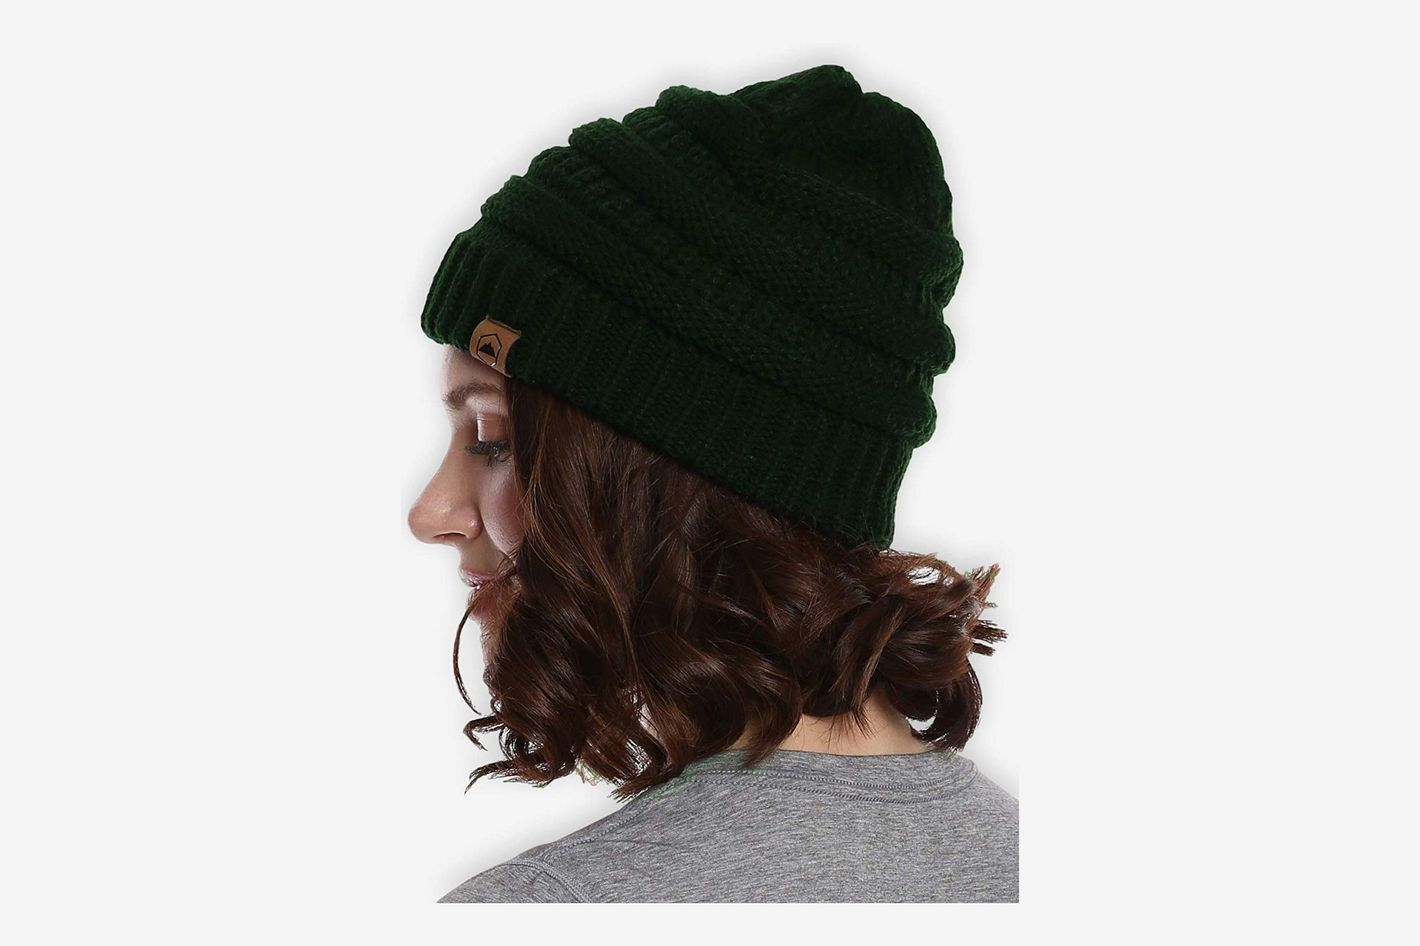 c9476866ede83 Best women s beanies. Tough Headwear Cable Knit Beanie. ""